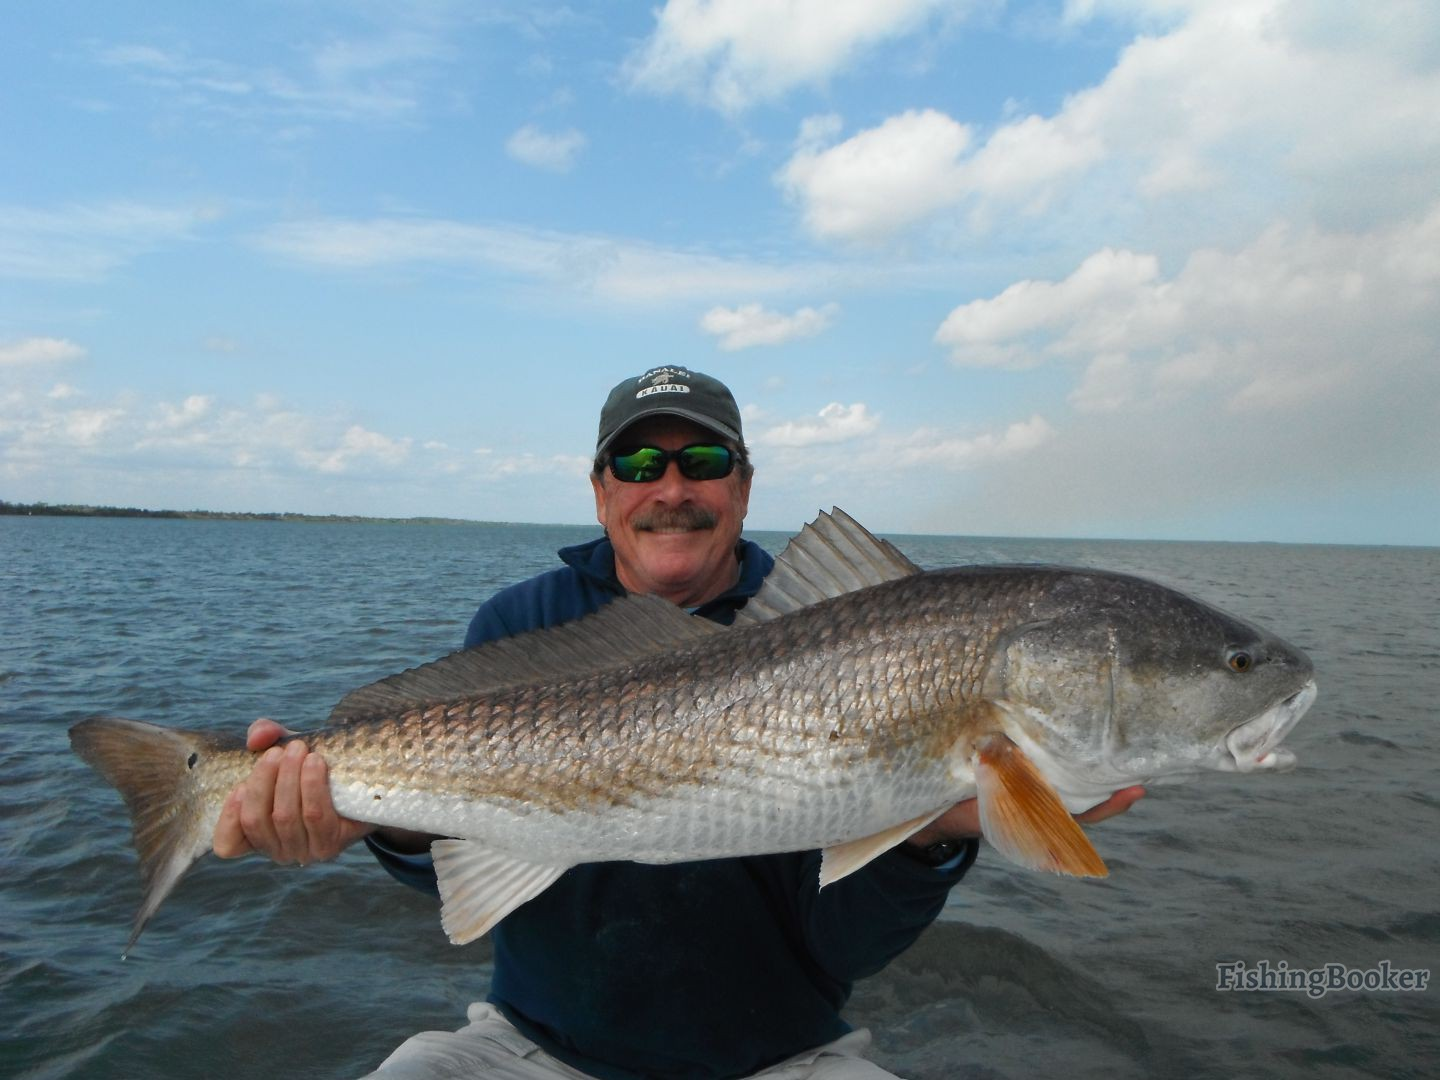 Top 10 fishing charters in new smyrna beach fl for New smyrna fishing charters